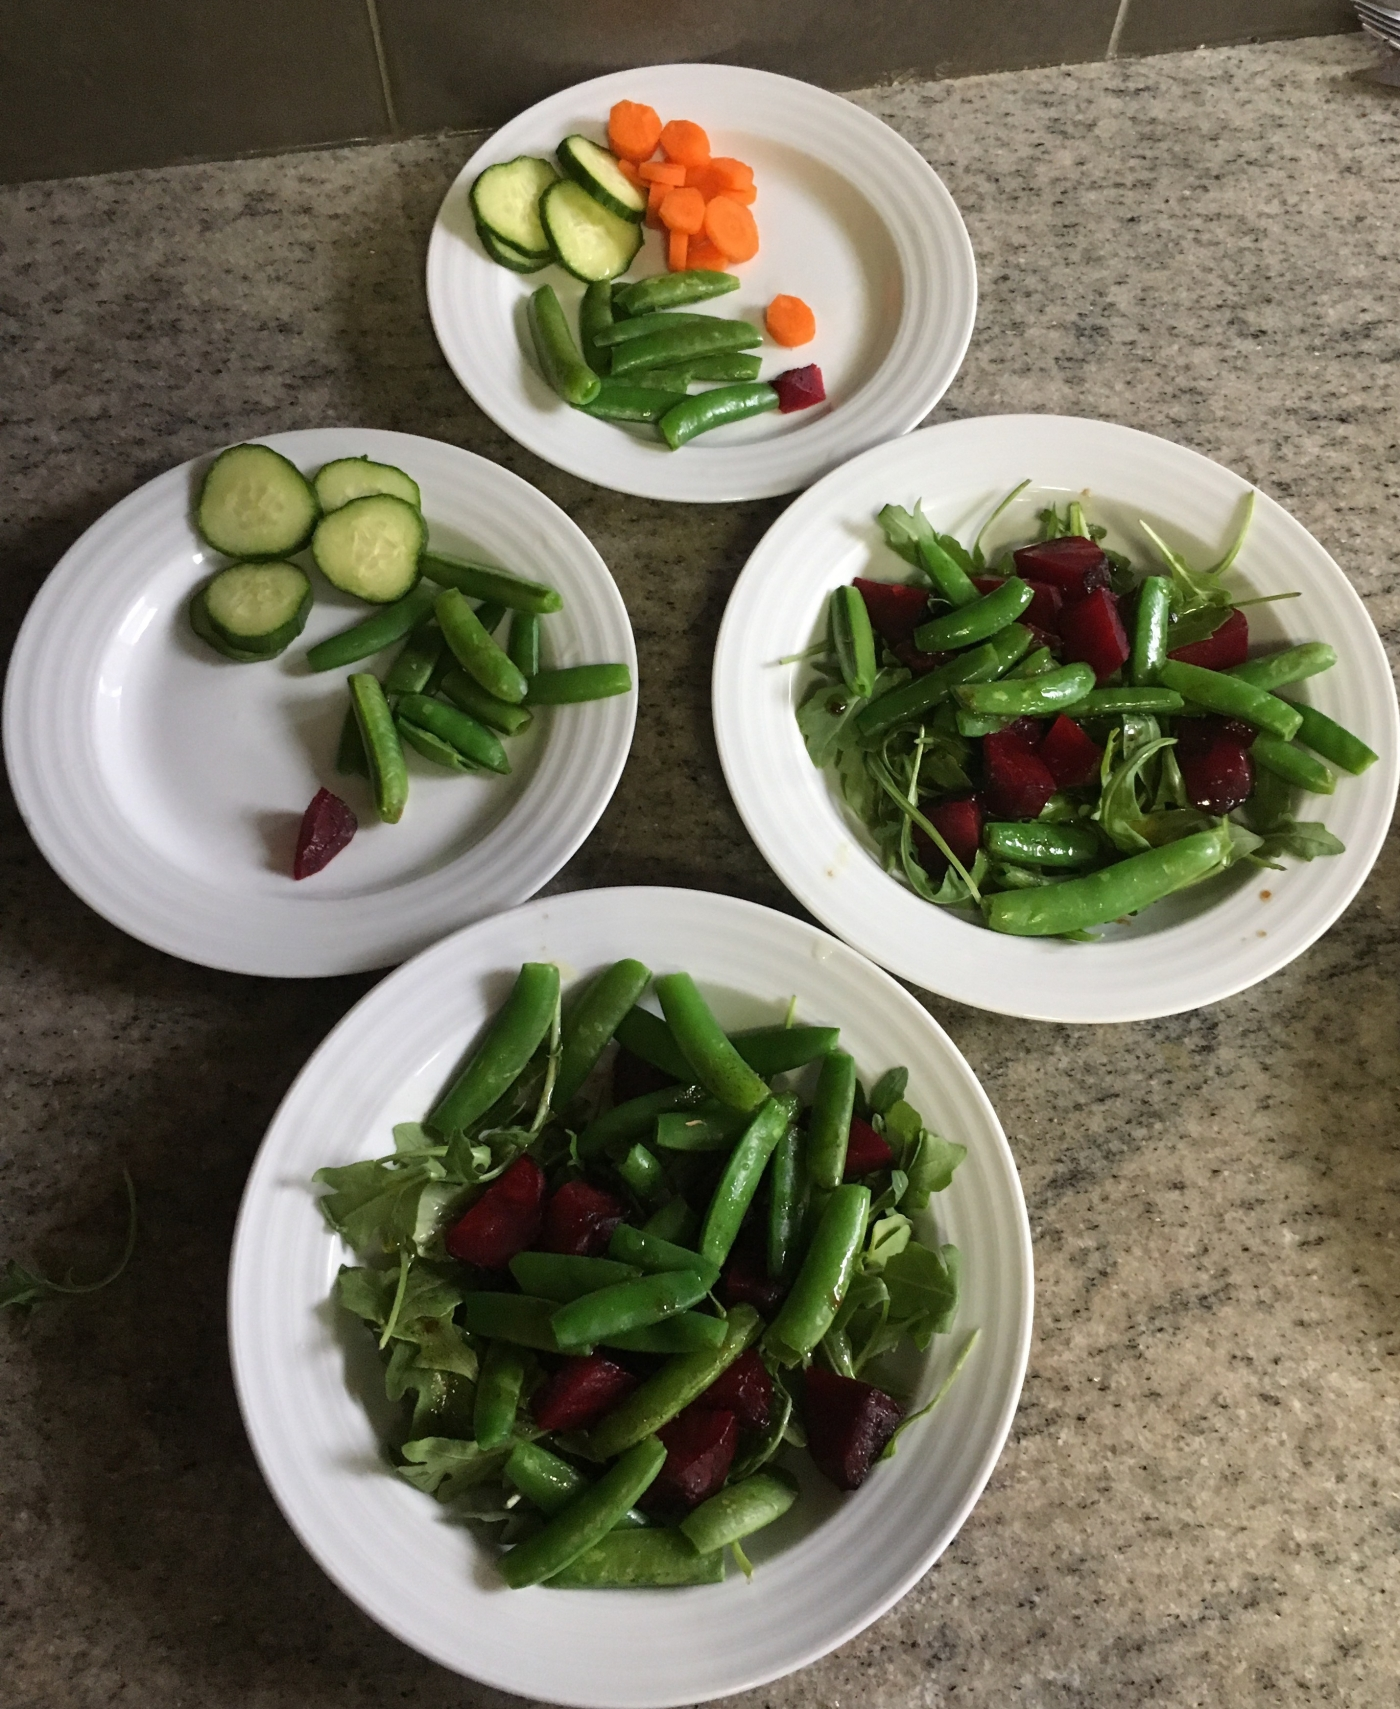 Roast beet, snap pea and arugula salad picture.